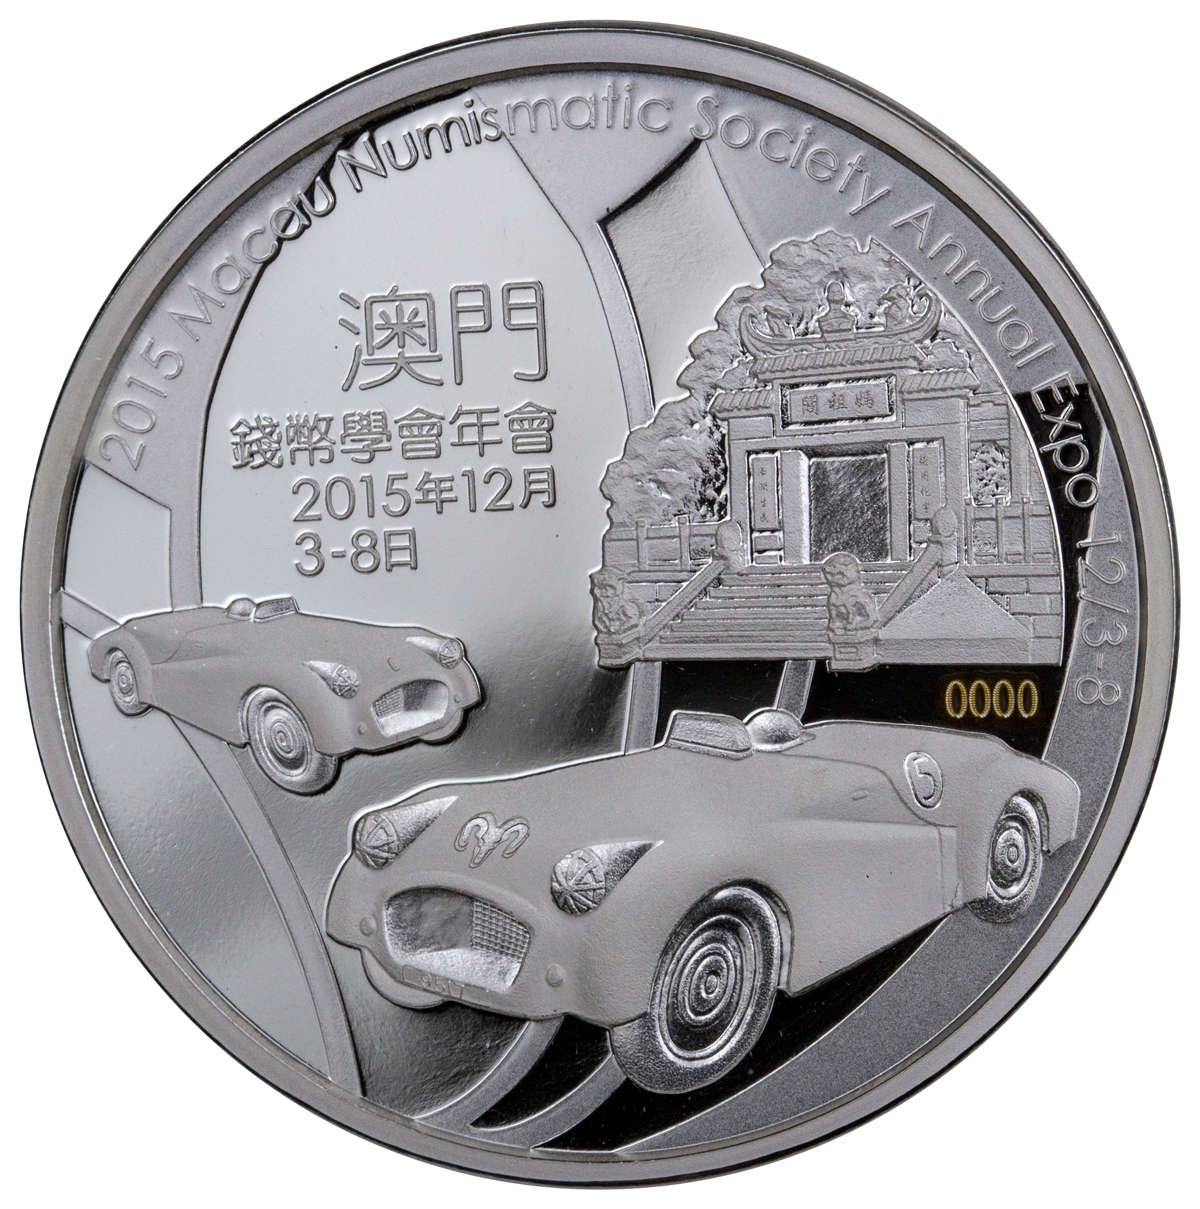 2015 China 2 oz. Proof Silver Official Panda Issue for the Macau World Money Show - GEM Proof (Original Mint Packaging)